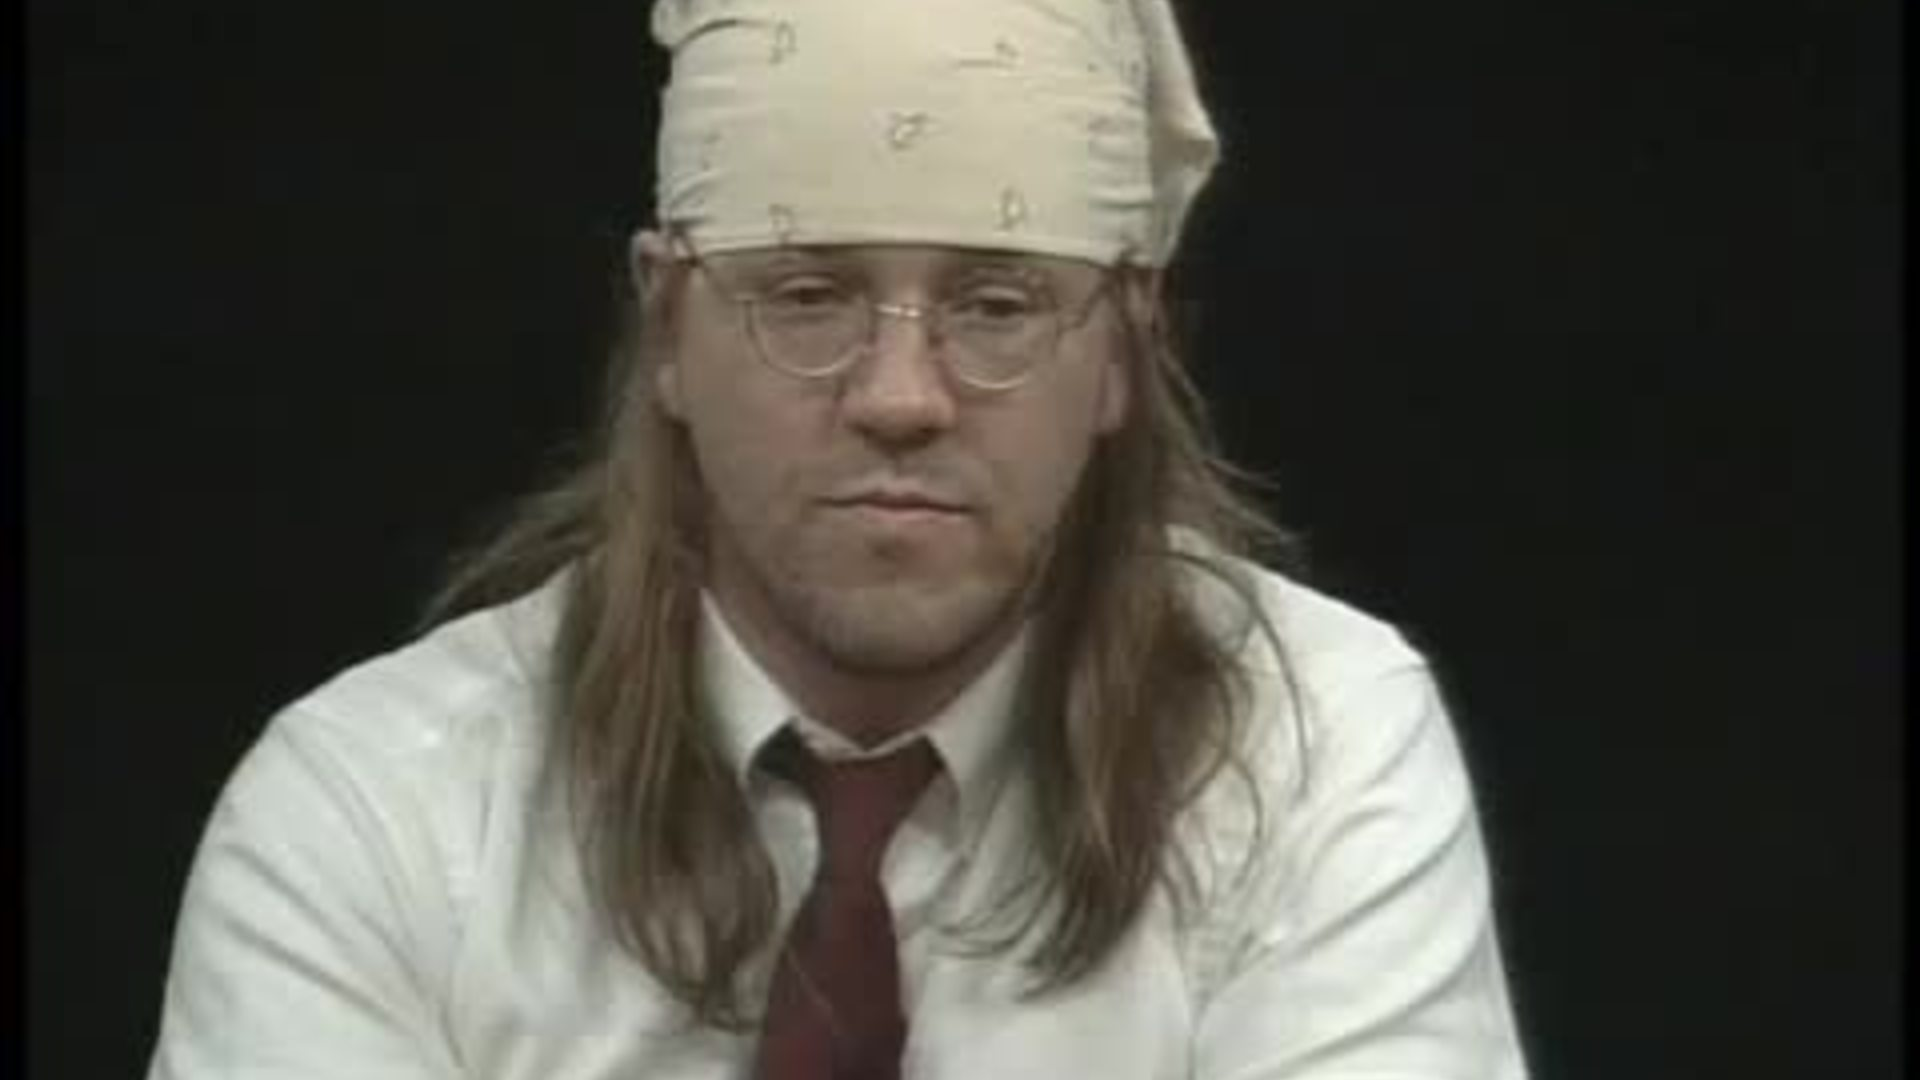 david foster wallace biography Wallace's lifelong battle with melancholy came to a conclusion in september 2008, when he committed suicide david foster wallace was born on february 21, 1962, in ithaca, ny (fittingly, his dad was a .